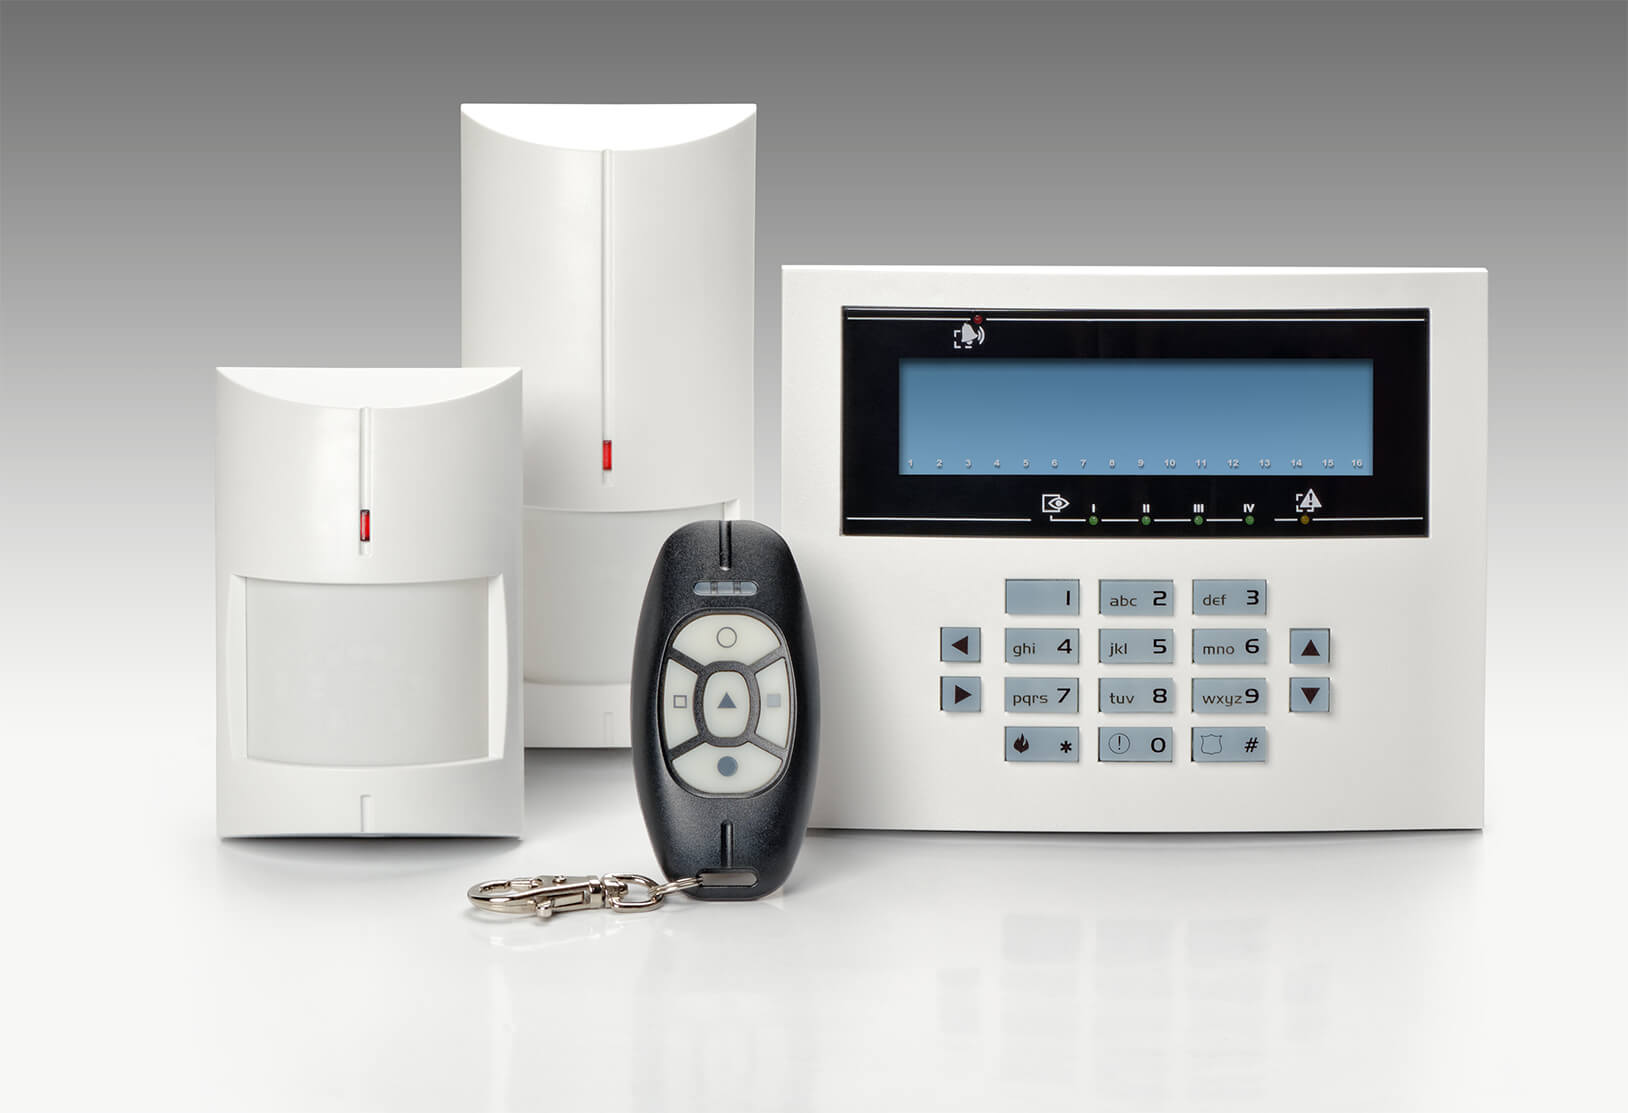 Commercial Burglar Alarms For Business in West Dulwich SE21  - Local West Dulwich SE21 burglar alarm company.Call 02078872244 - Dedicated to Safety & Security. Companies, shops and homes ..